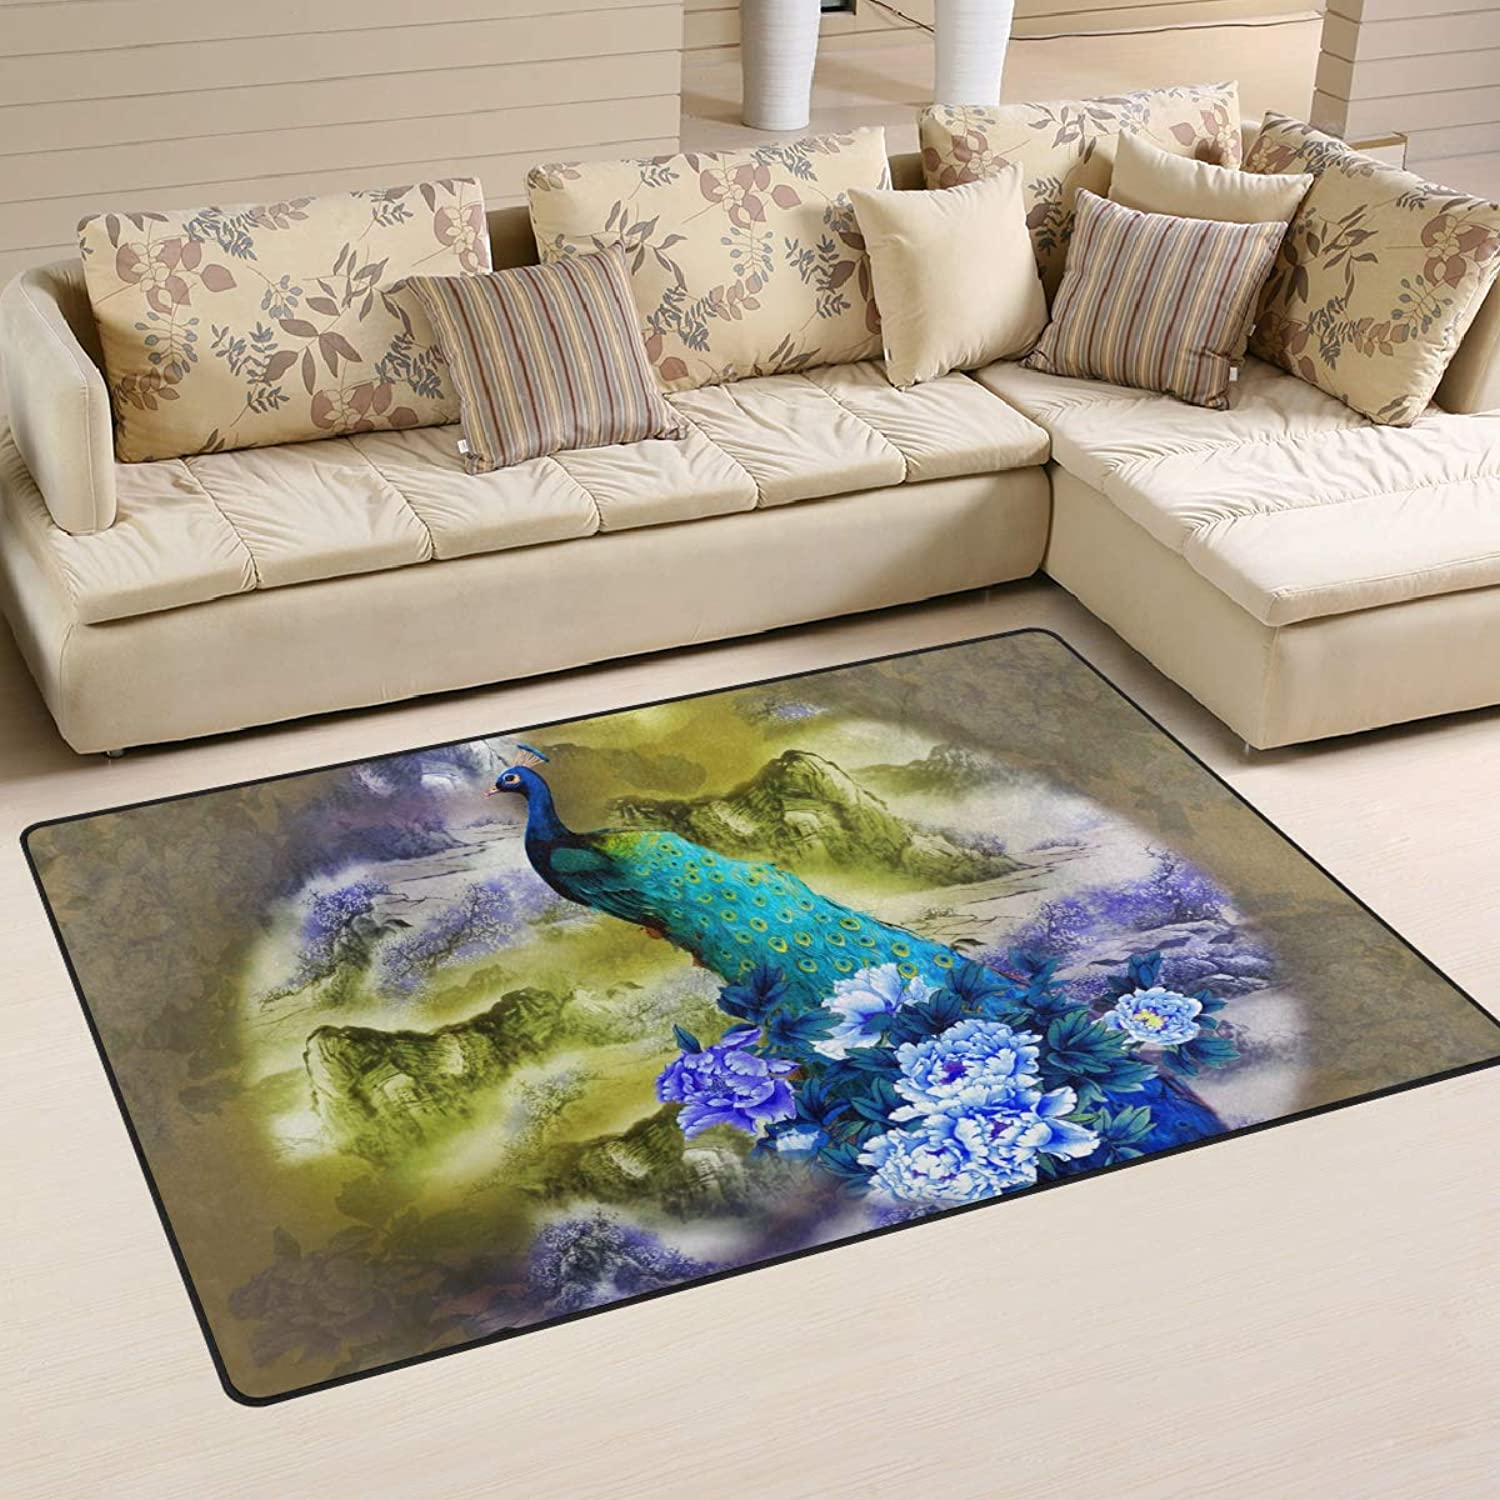 Area Rugs Doormats Flower Peony and Peacock 5'x3'3 (60x39 Inches) Non-Slip Floor Mat Soft Carpet for Living Dining Bedroom Home